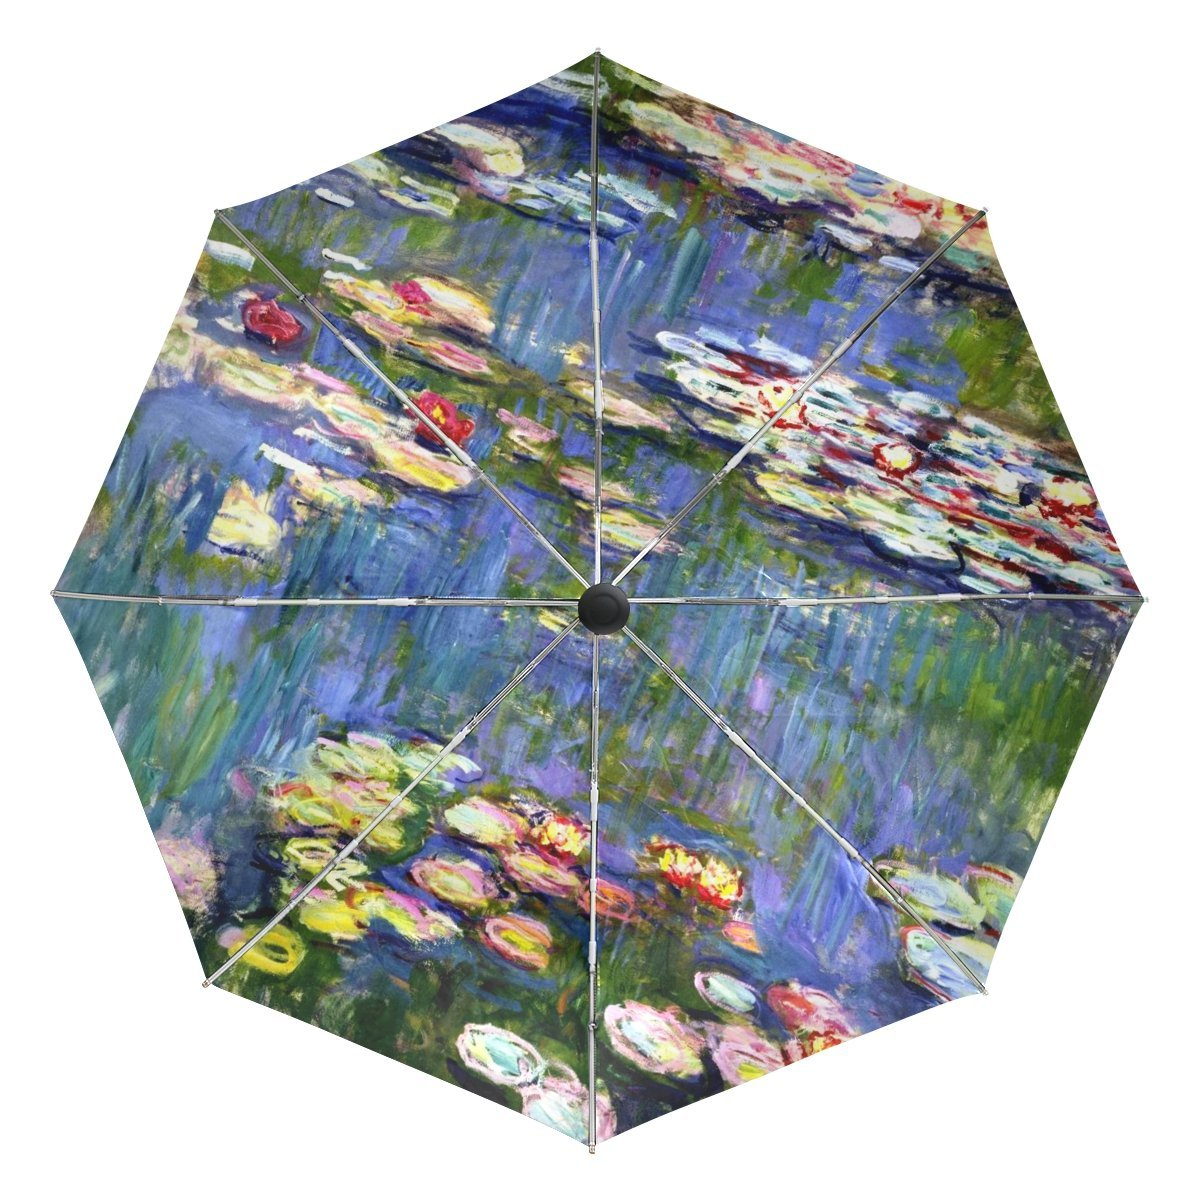 783f5d2eed8293 Get Quotations · BAIHUISHOP Monet Painting Windproof Umbrellas Auto Open  Close 3 Folding Golf Strong Durable Compact Travel Umbrella